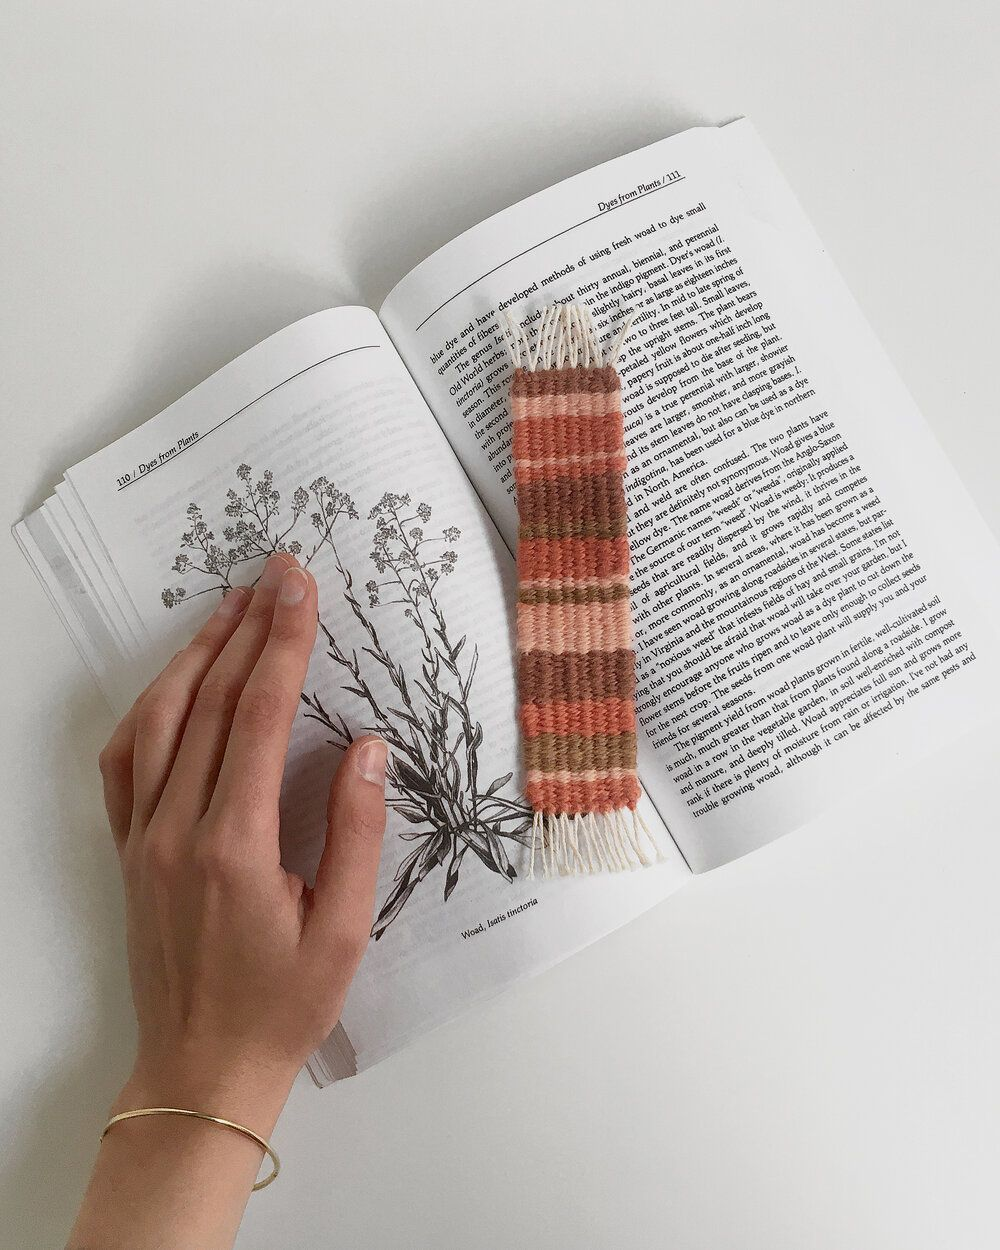 Tiny weaving project for an instant gratification - mini wallhangings, ornaments and more #weaving #bookmark #handwoven